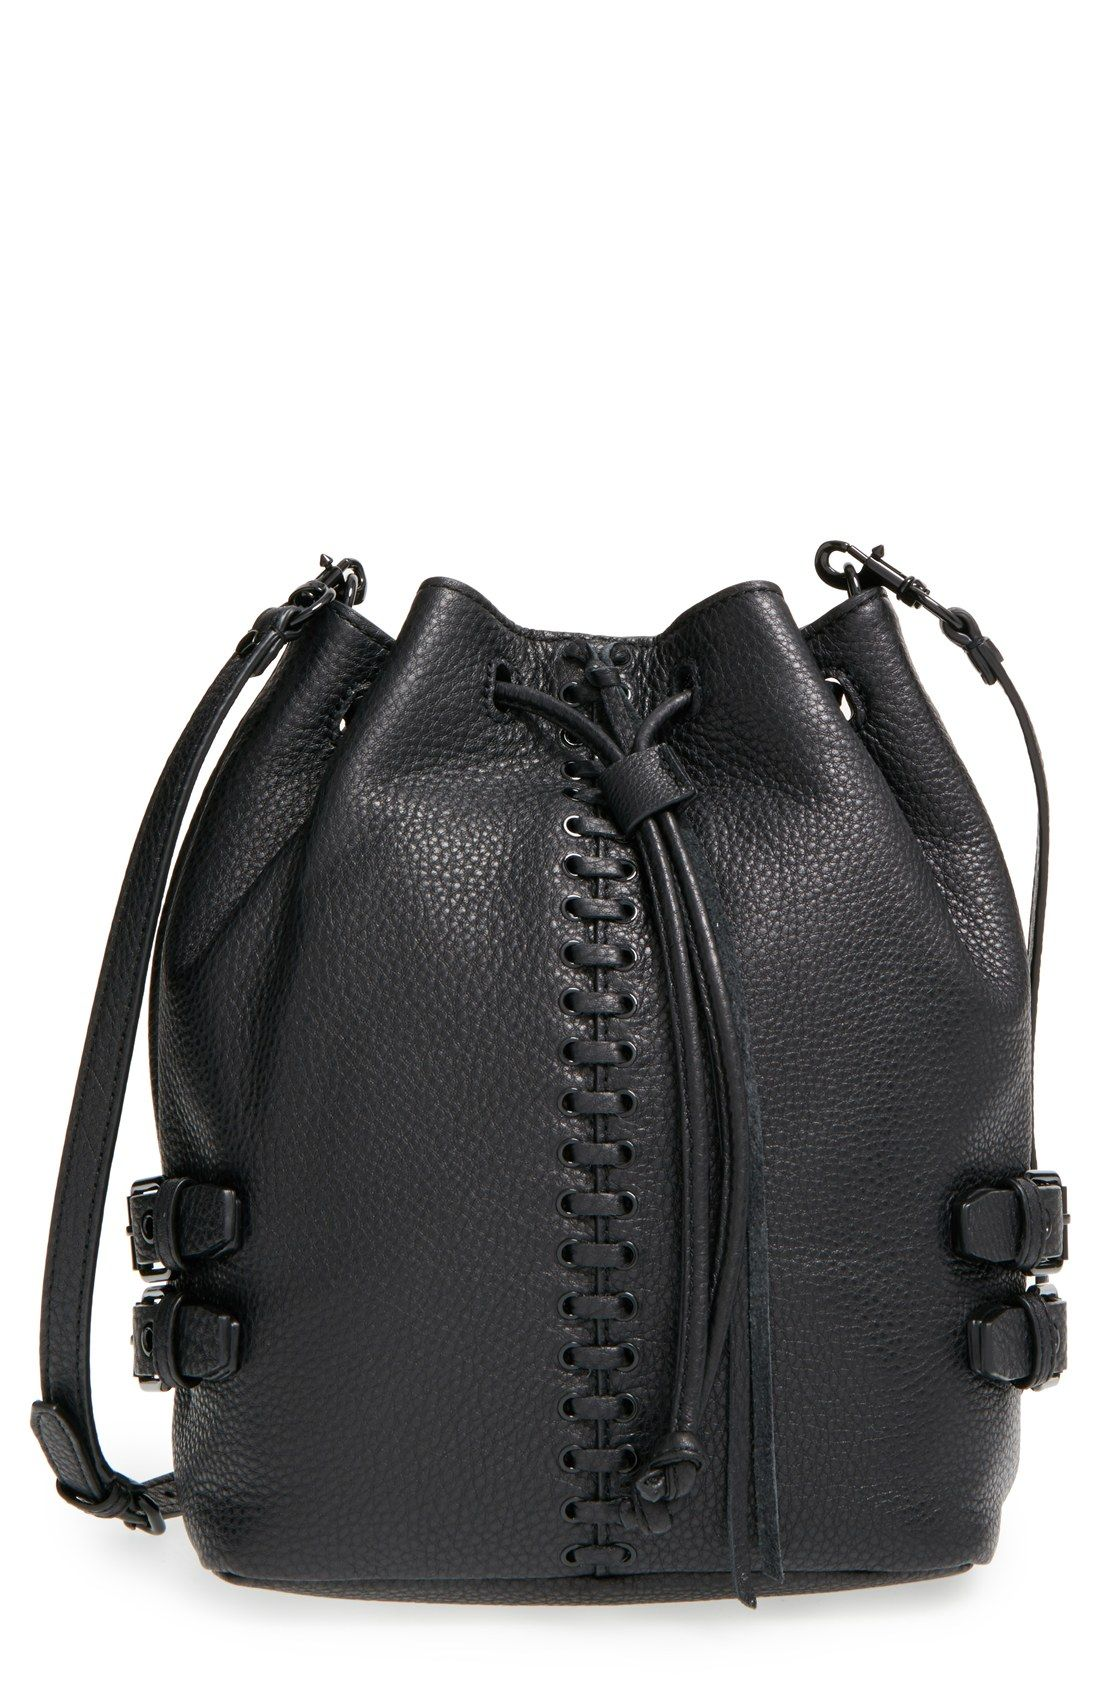 24a68f5084e6 Loving this edgy-yet-elegant bucket bag from Rebecca Minkoff. A slouchy  silhouette furthers the attitude, while an optional crossbody strap adds  both style ...